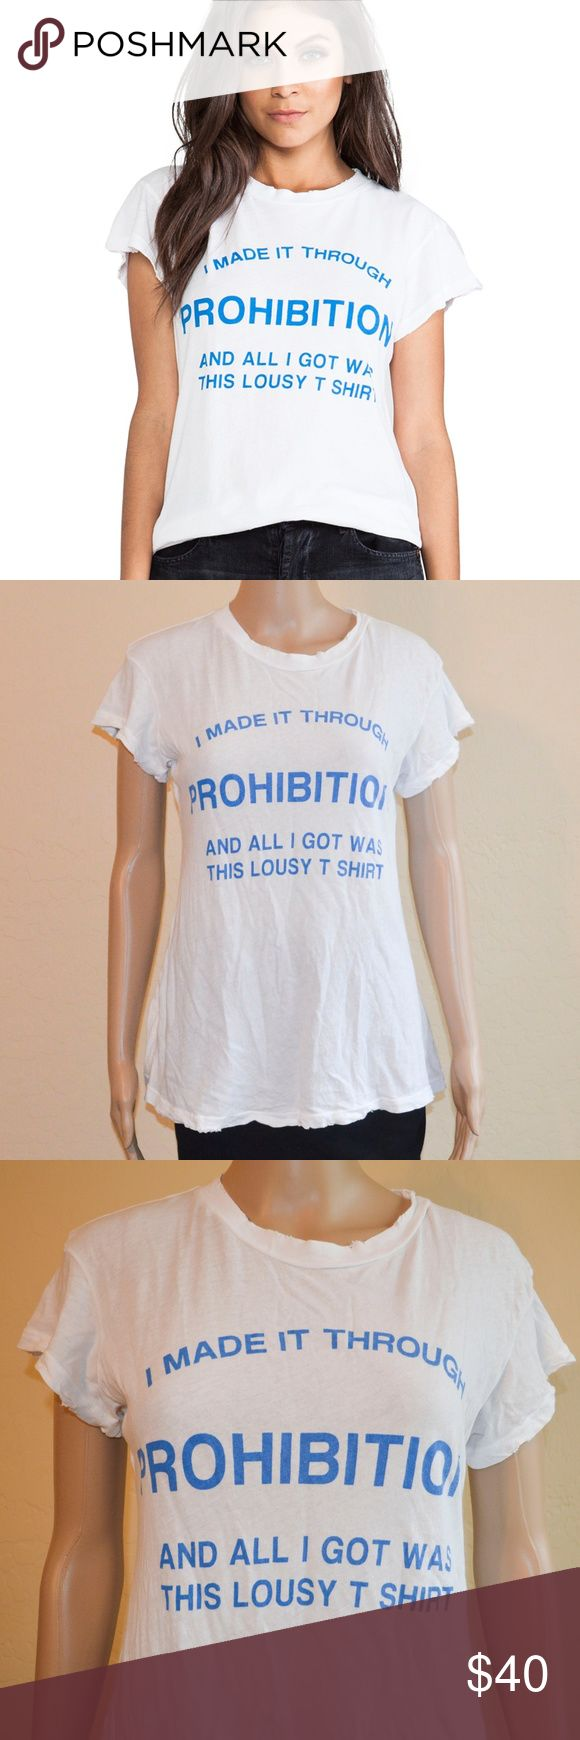 "Wildfox Prohibition White Desert Crew Neck T-Shirt Wildfox Prohibition tee. Blue block lettering on this soft white tee reads, ""I made it through prohibition and all I got was this lousy t shirt"". Intentionally 'worn' look around the edges. EUC - like new. Rare & hard to find. The only one listed on Posh and there are none on e bay.    Size: S  Measurements Laying Flat -  Underarm to Underarm: 18"" Shoulder to Hem: 25 1/2""  Material: 100% Cotton Made in USA Wildfox Tops Tees - Short Sleeve"